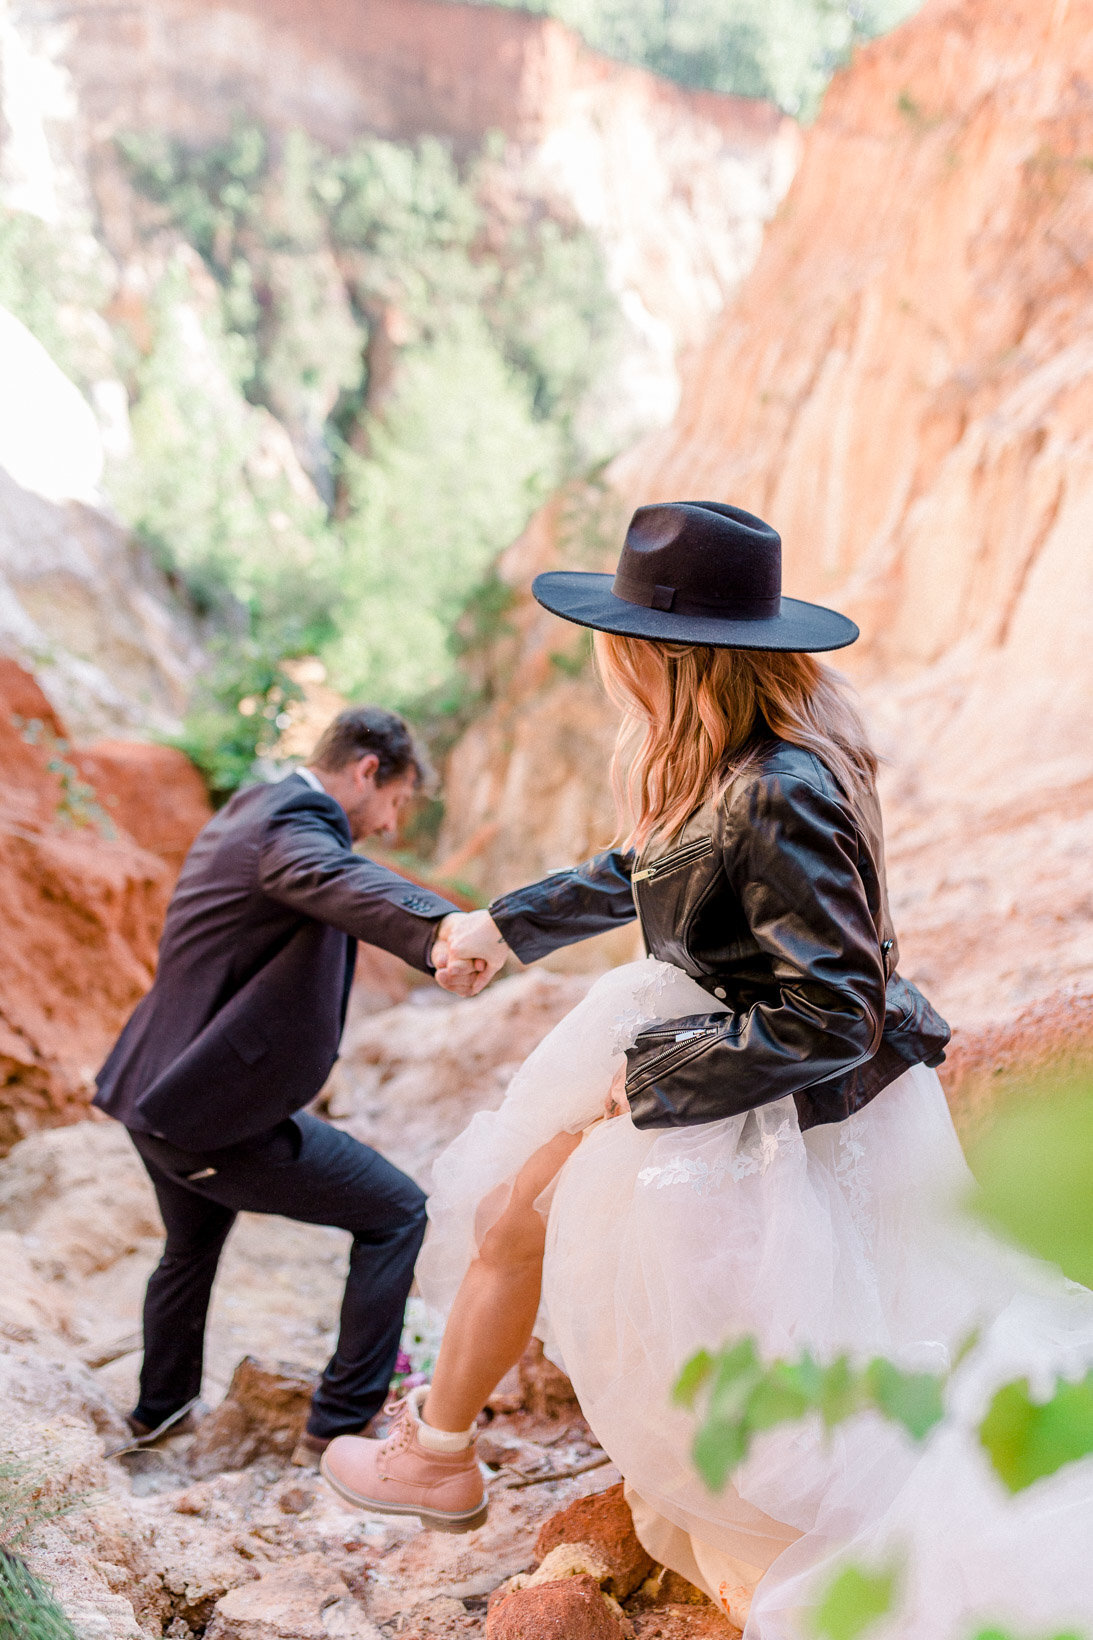 providence-canyon-wedding-elopement-adventure-hiking-georgia-arizona-20